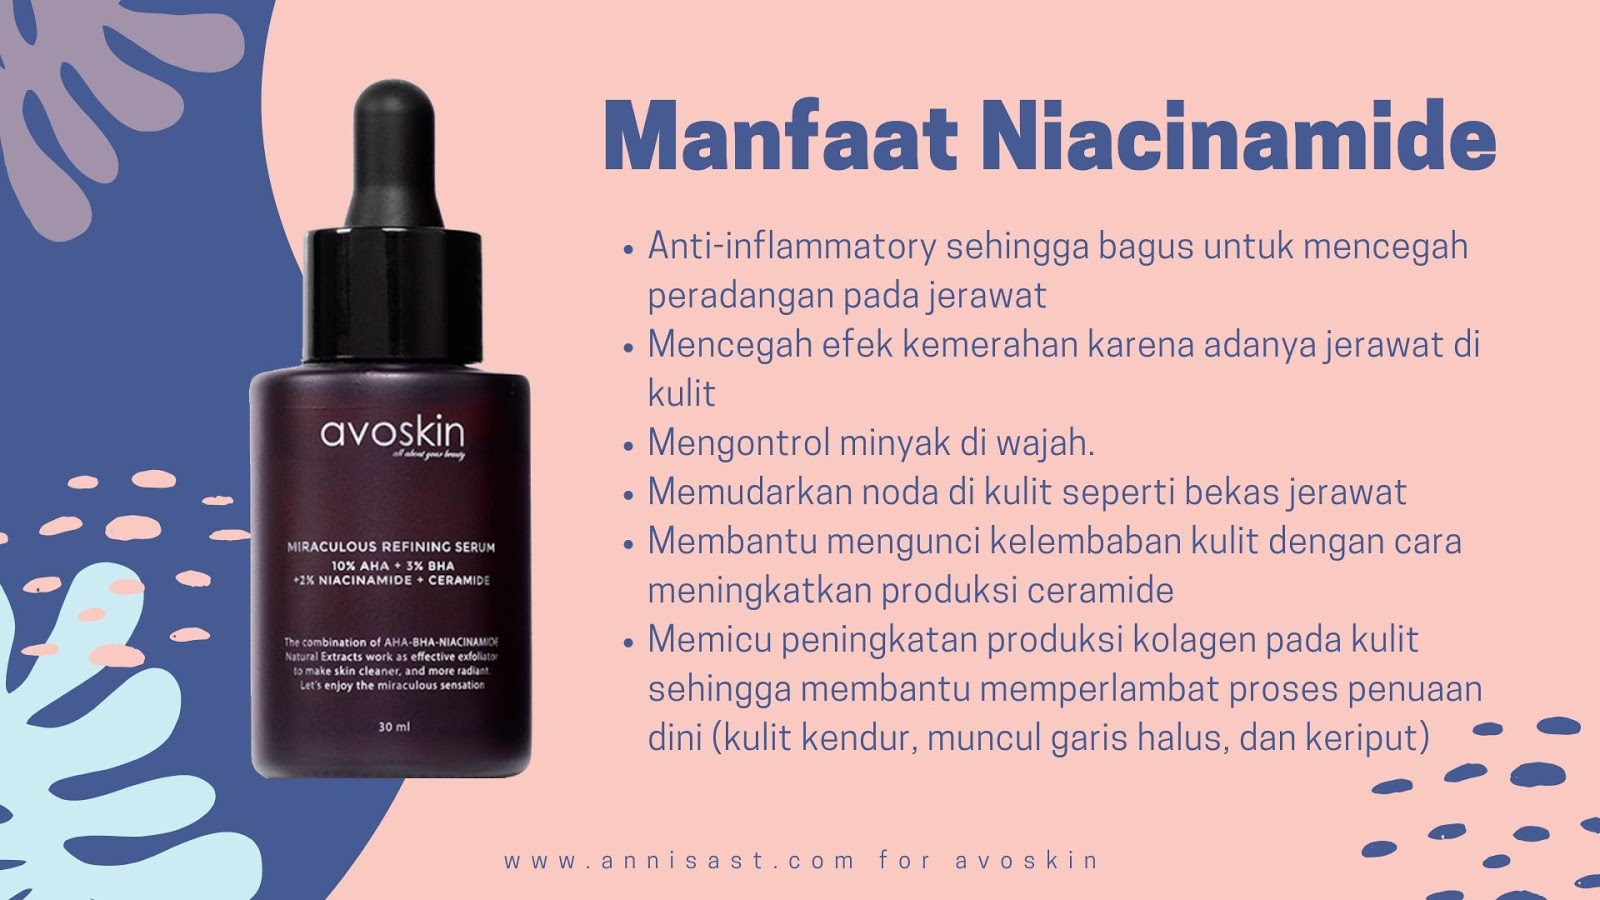 Avoskin Miraculous Refining Serum Review